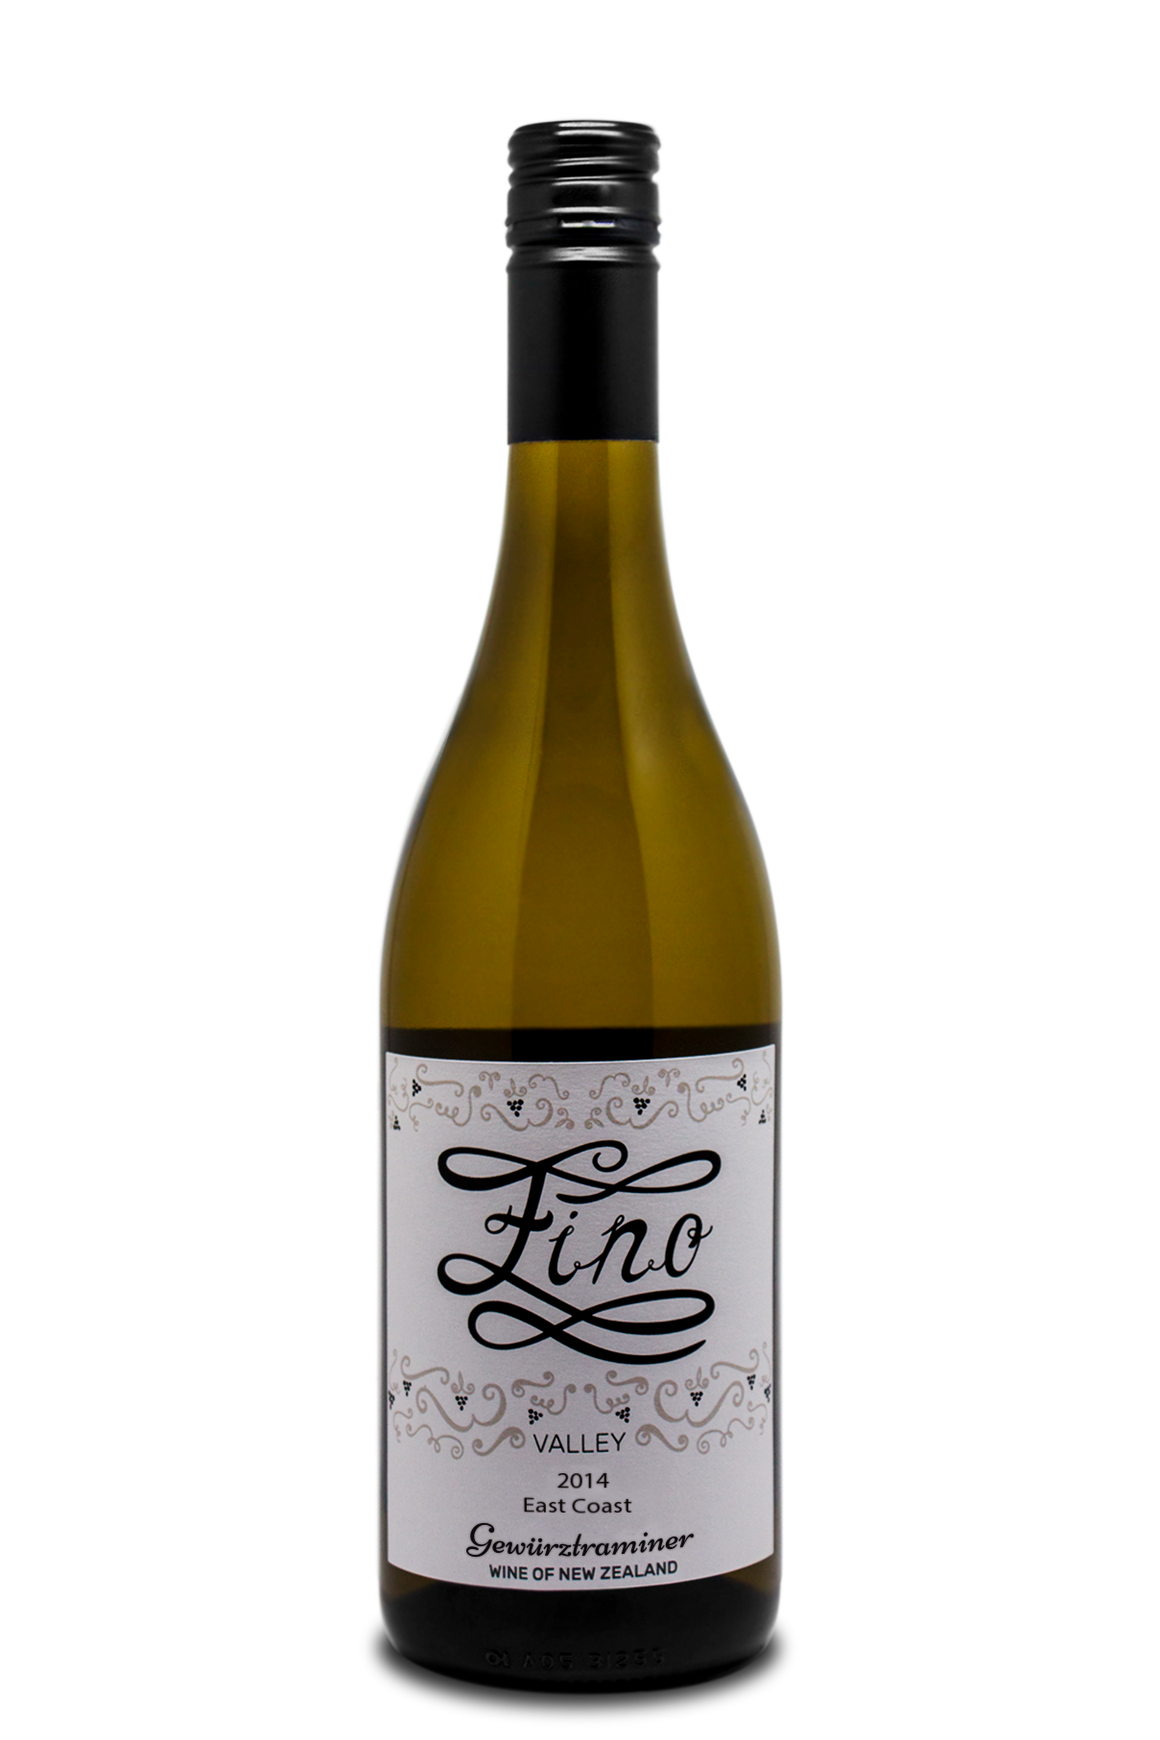 Fino Valley 2014 Hawkes Bay Gewürztraminer